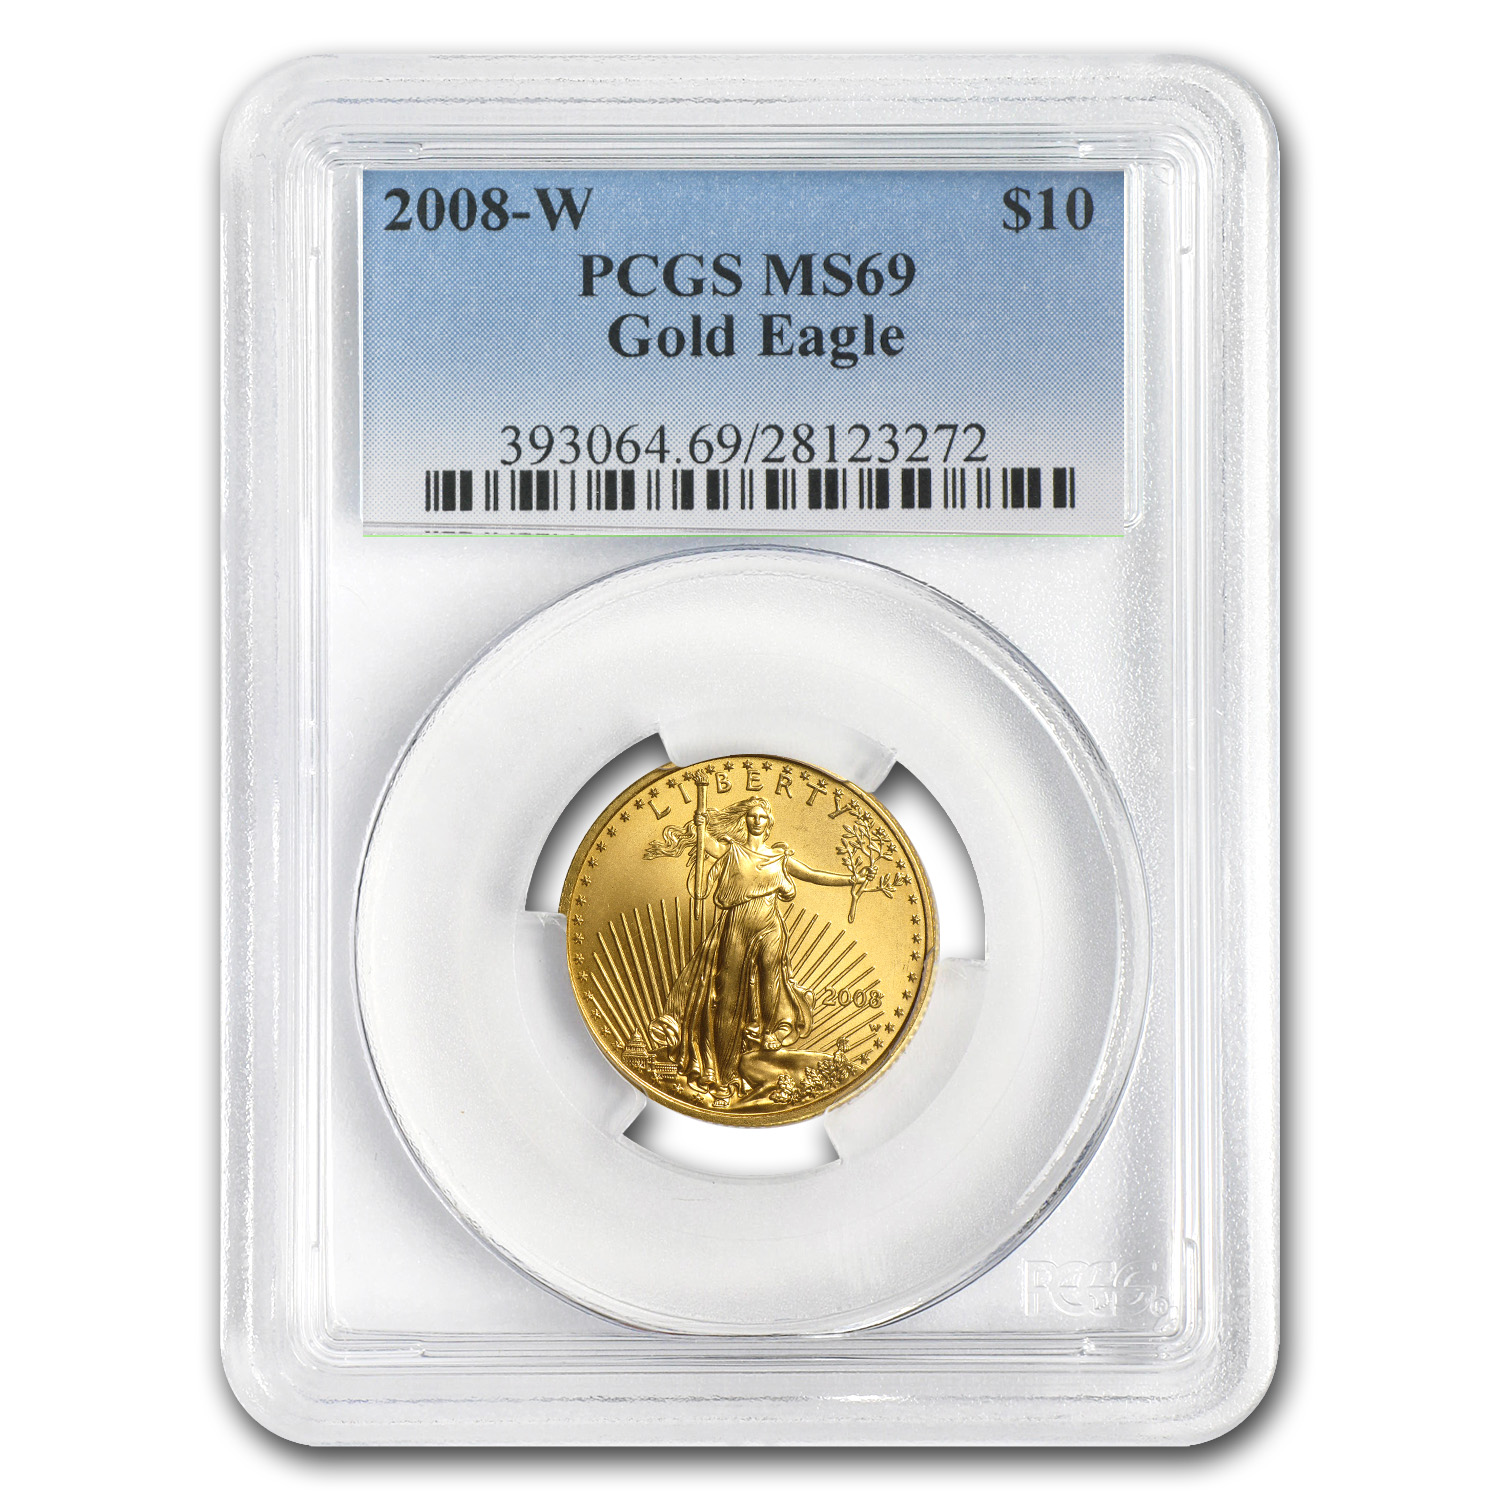 2008-W 1/4 oz Burnished Gold American Eagle MS-69 PCGS